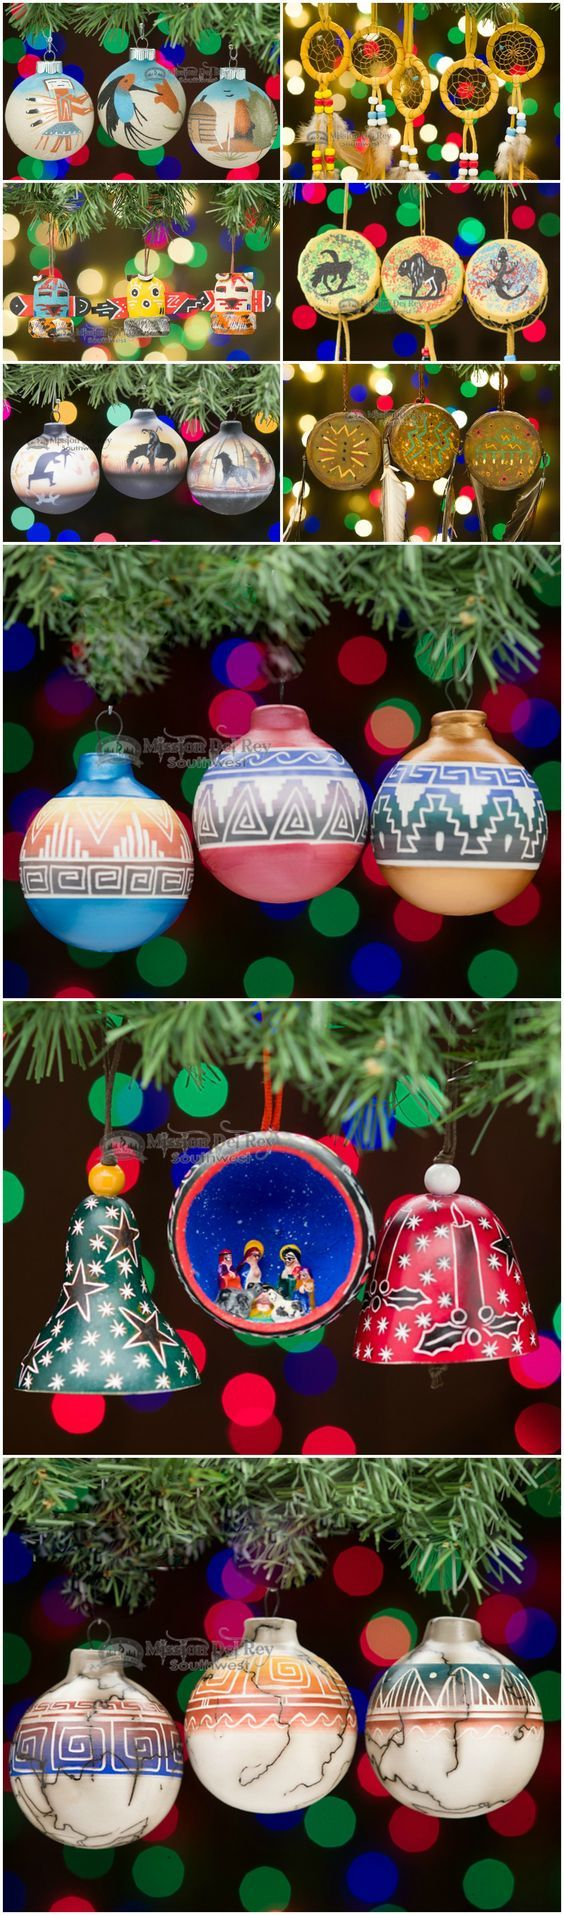 Our beautiful southwestern Christmas ornaments are the perfect decor accent for a southwestern, western or rustic style home.  Rustic ornaments add just the right touch to any tree and enhance rustic furnishings and decor.  See our entire collection of Native American pottery ornaments, southwestern ornaments and rustic decor at http://www.missiondelrey.com/rustic-southwest-christmas-ornaments/: